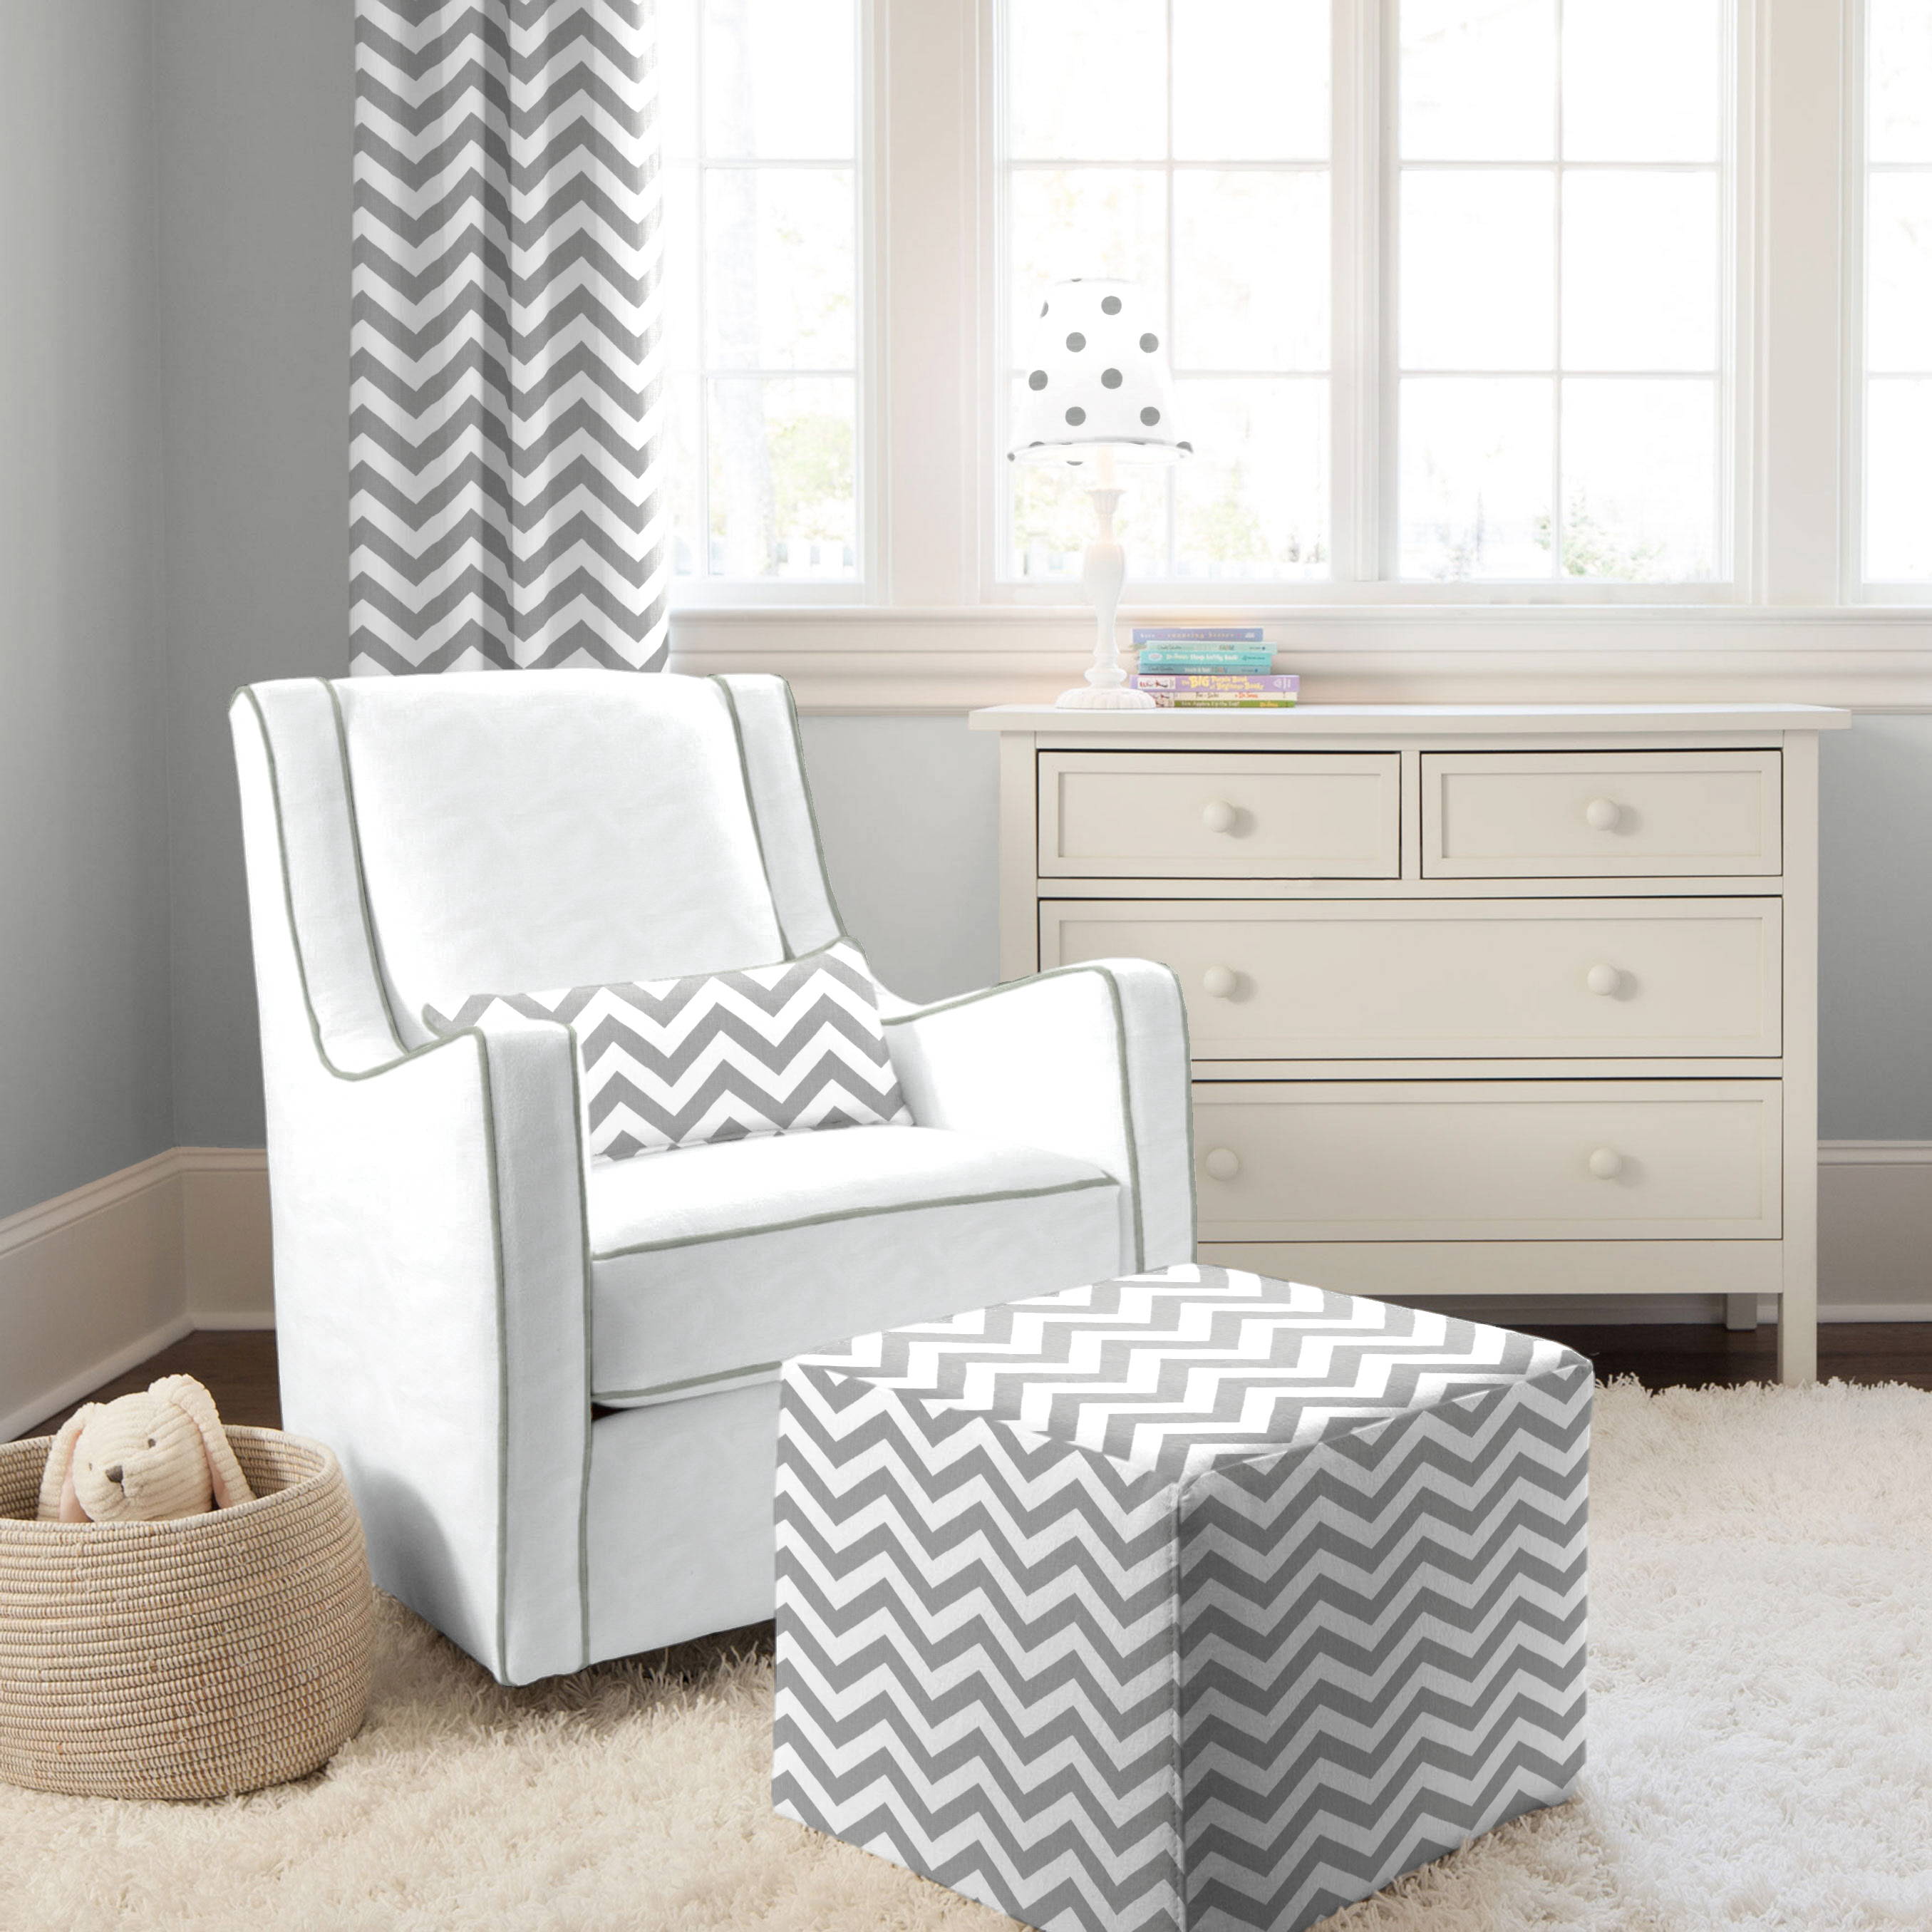 White Grey Glider Zig Zag Design Of Modern Rocking Chair For Nursery .